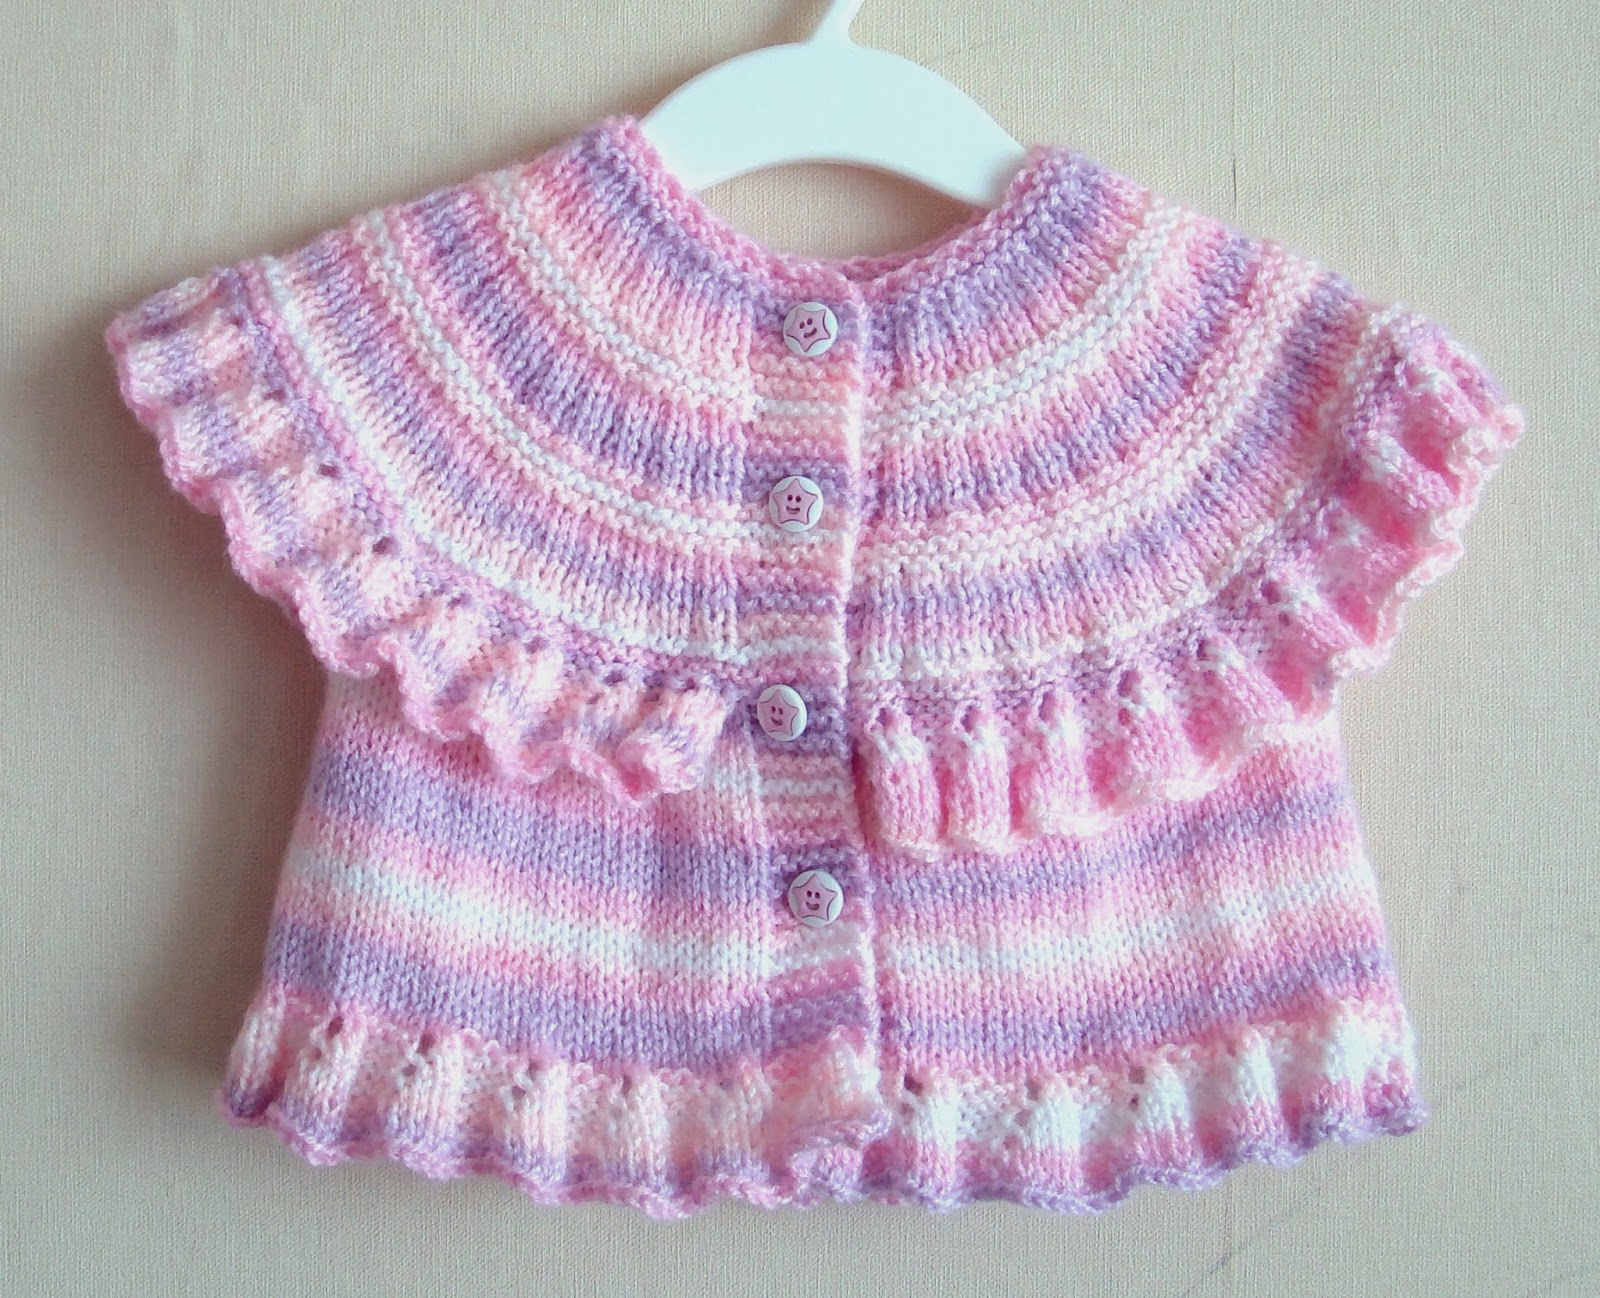 Knitting Pattern Baby Undershirt : Knitting Pattern for Ruffle Baby Vest ~ Pure Craft